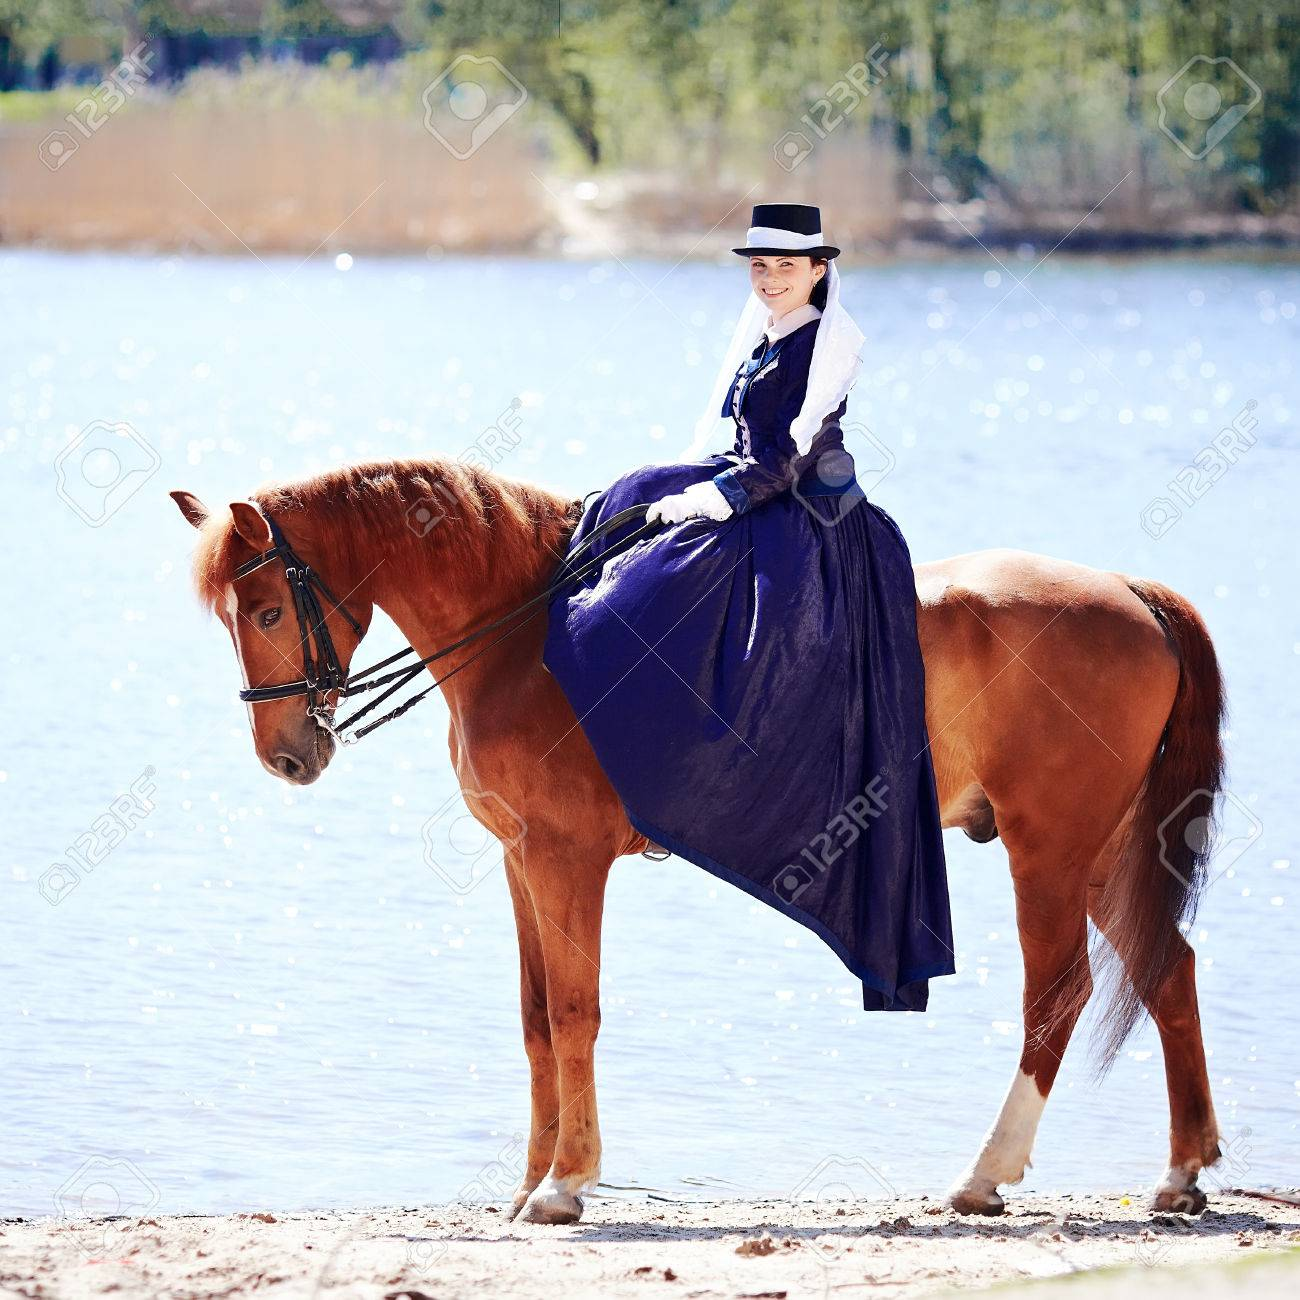 lady on a horse the lady on riding walk the woman astride a horse